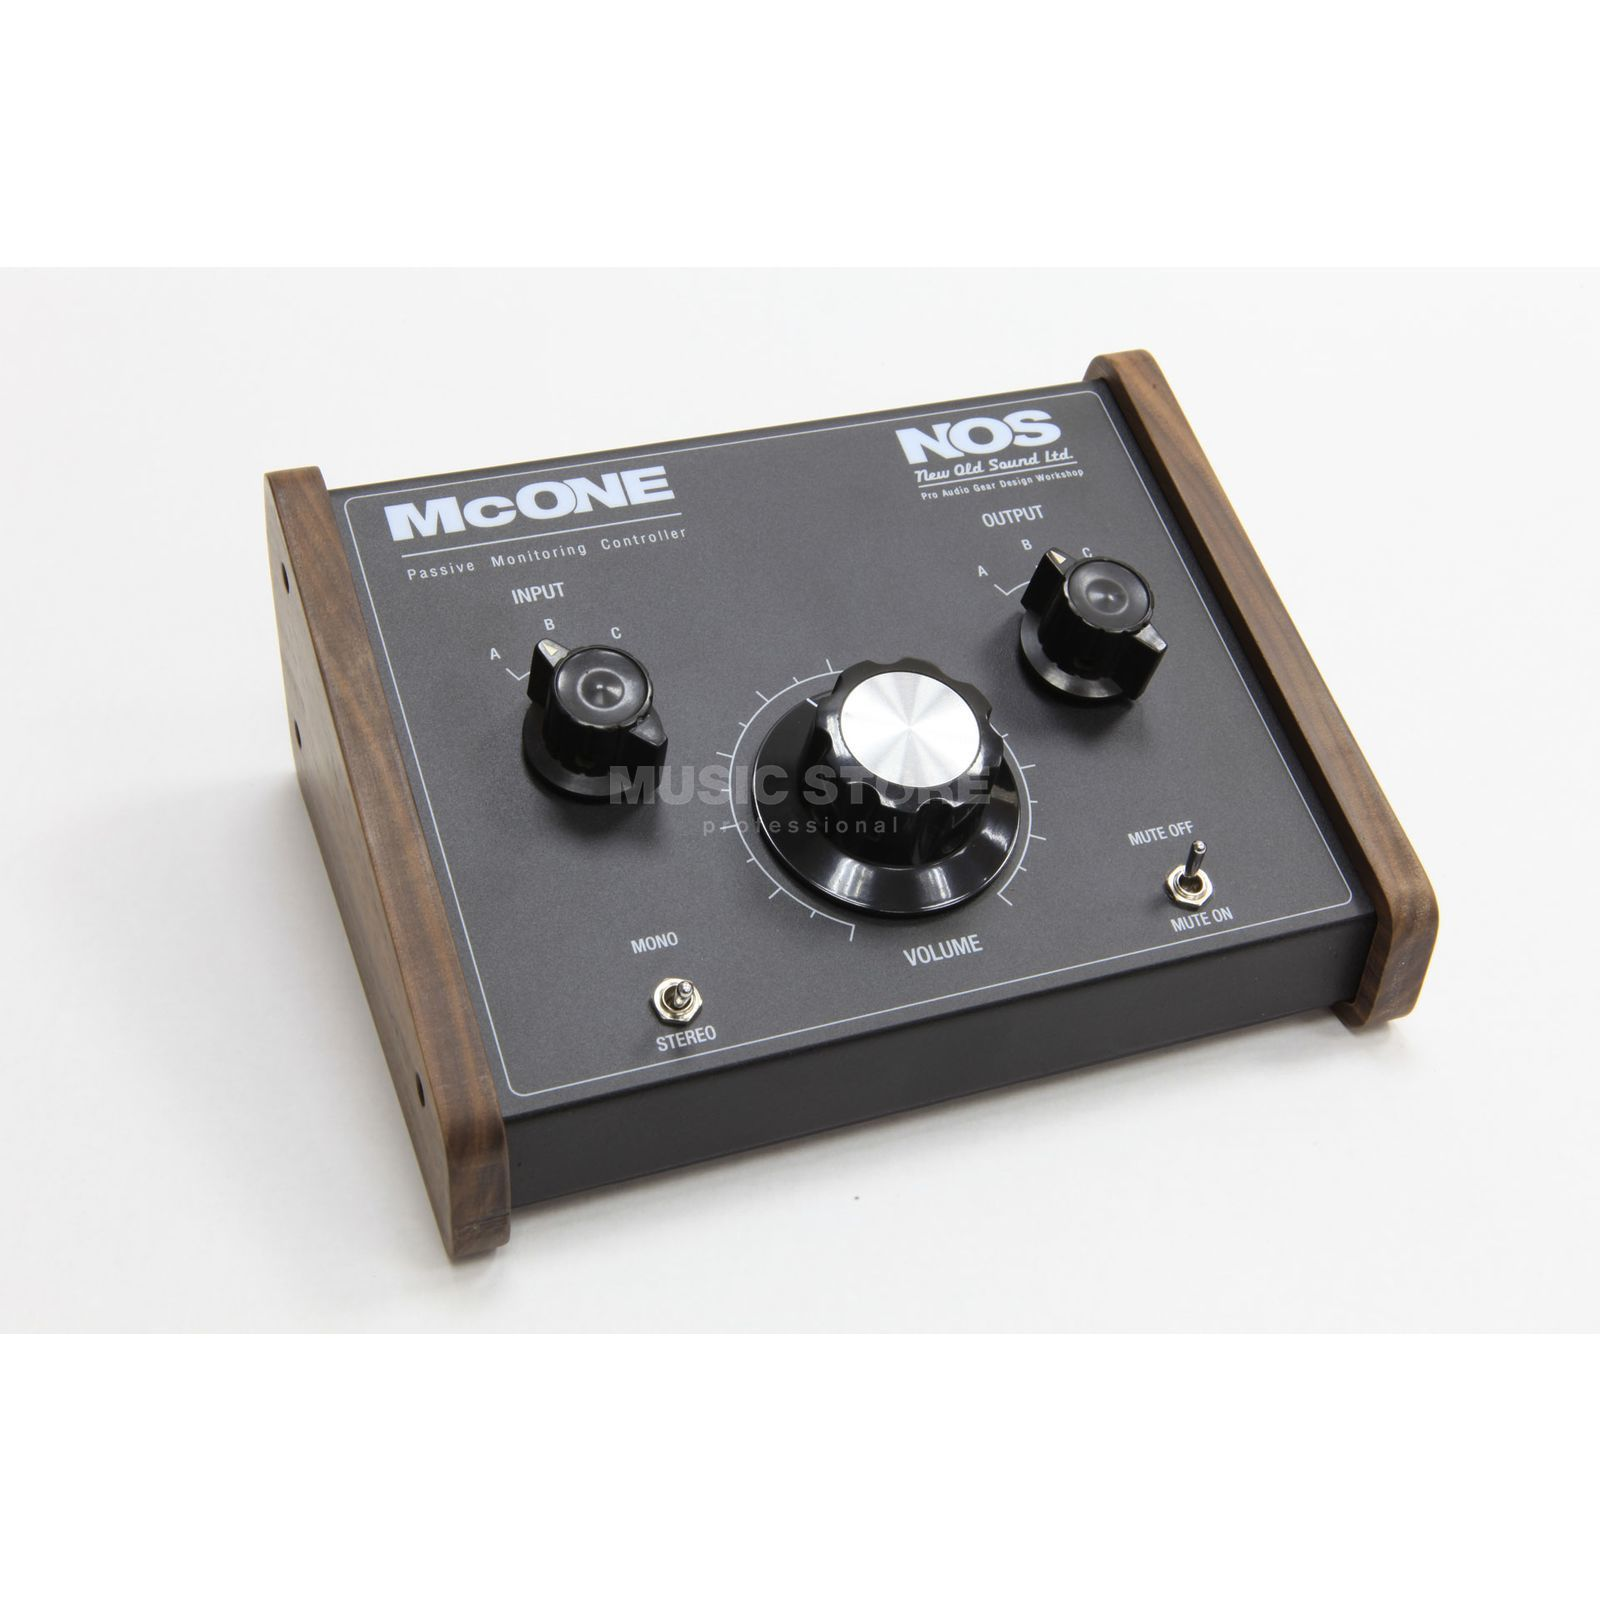 New Old Sound McONE Monitor Controller - Stepper Produktbillede